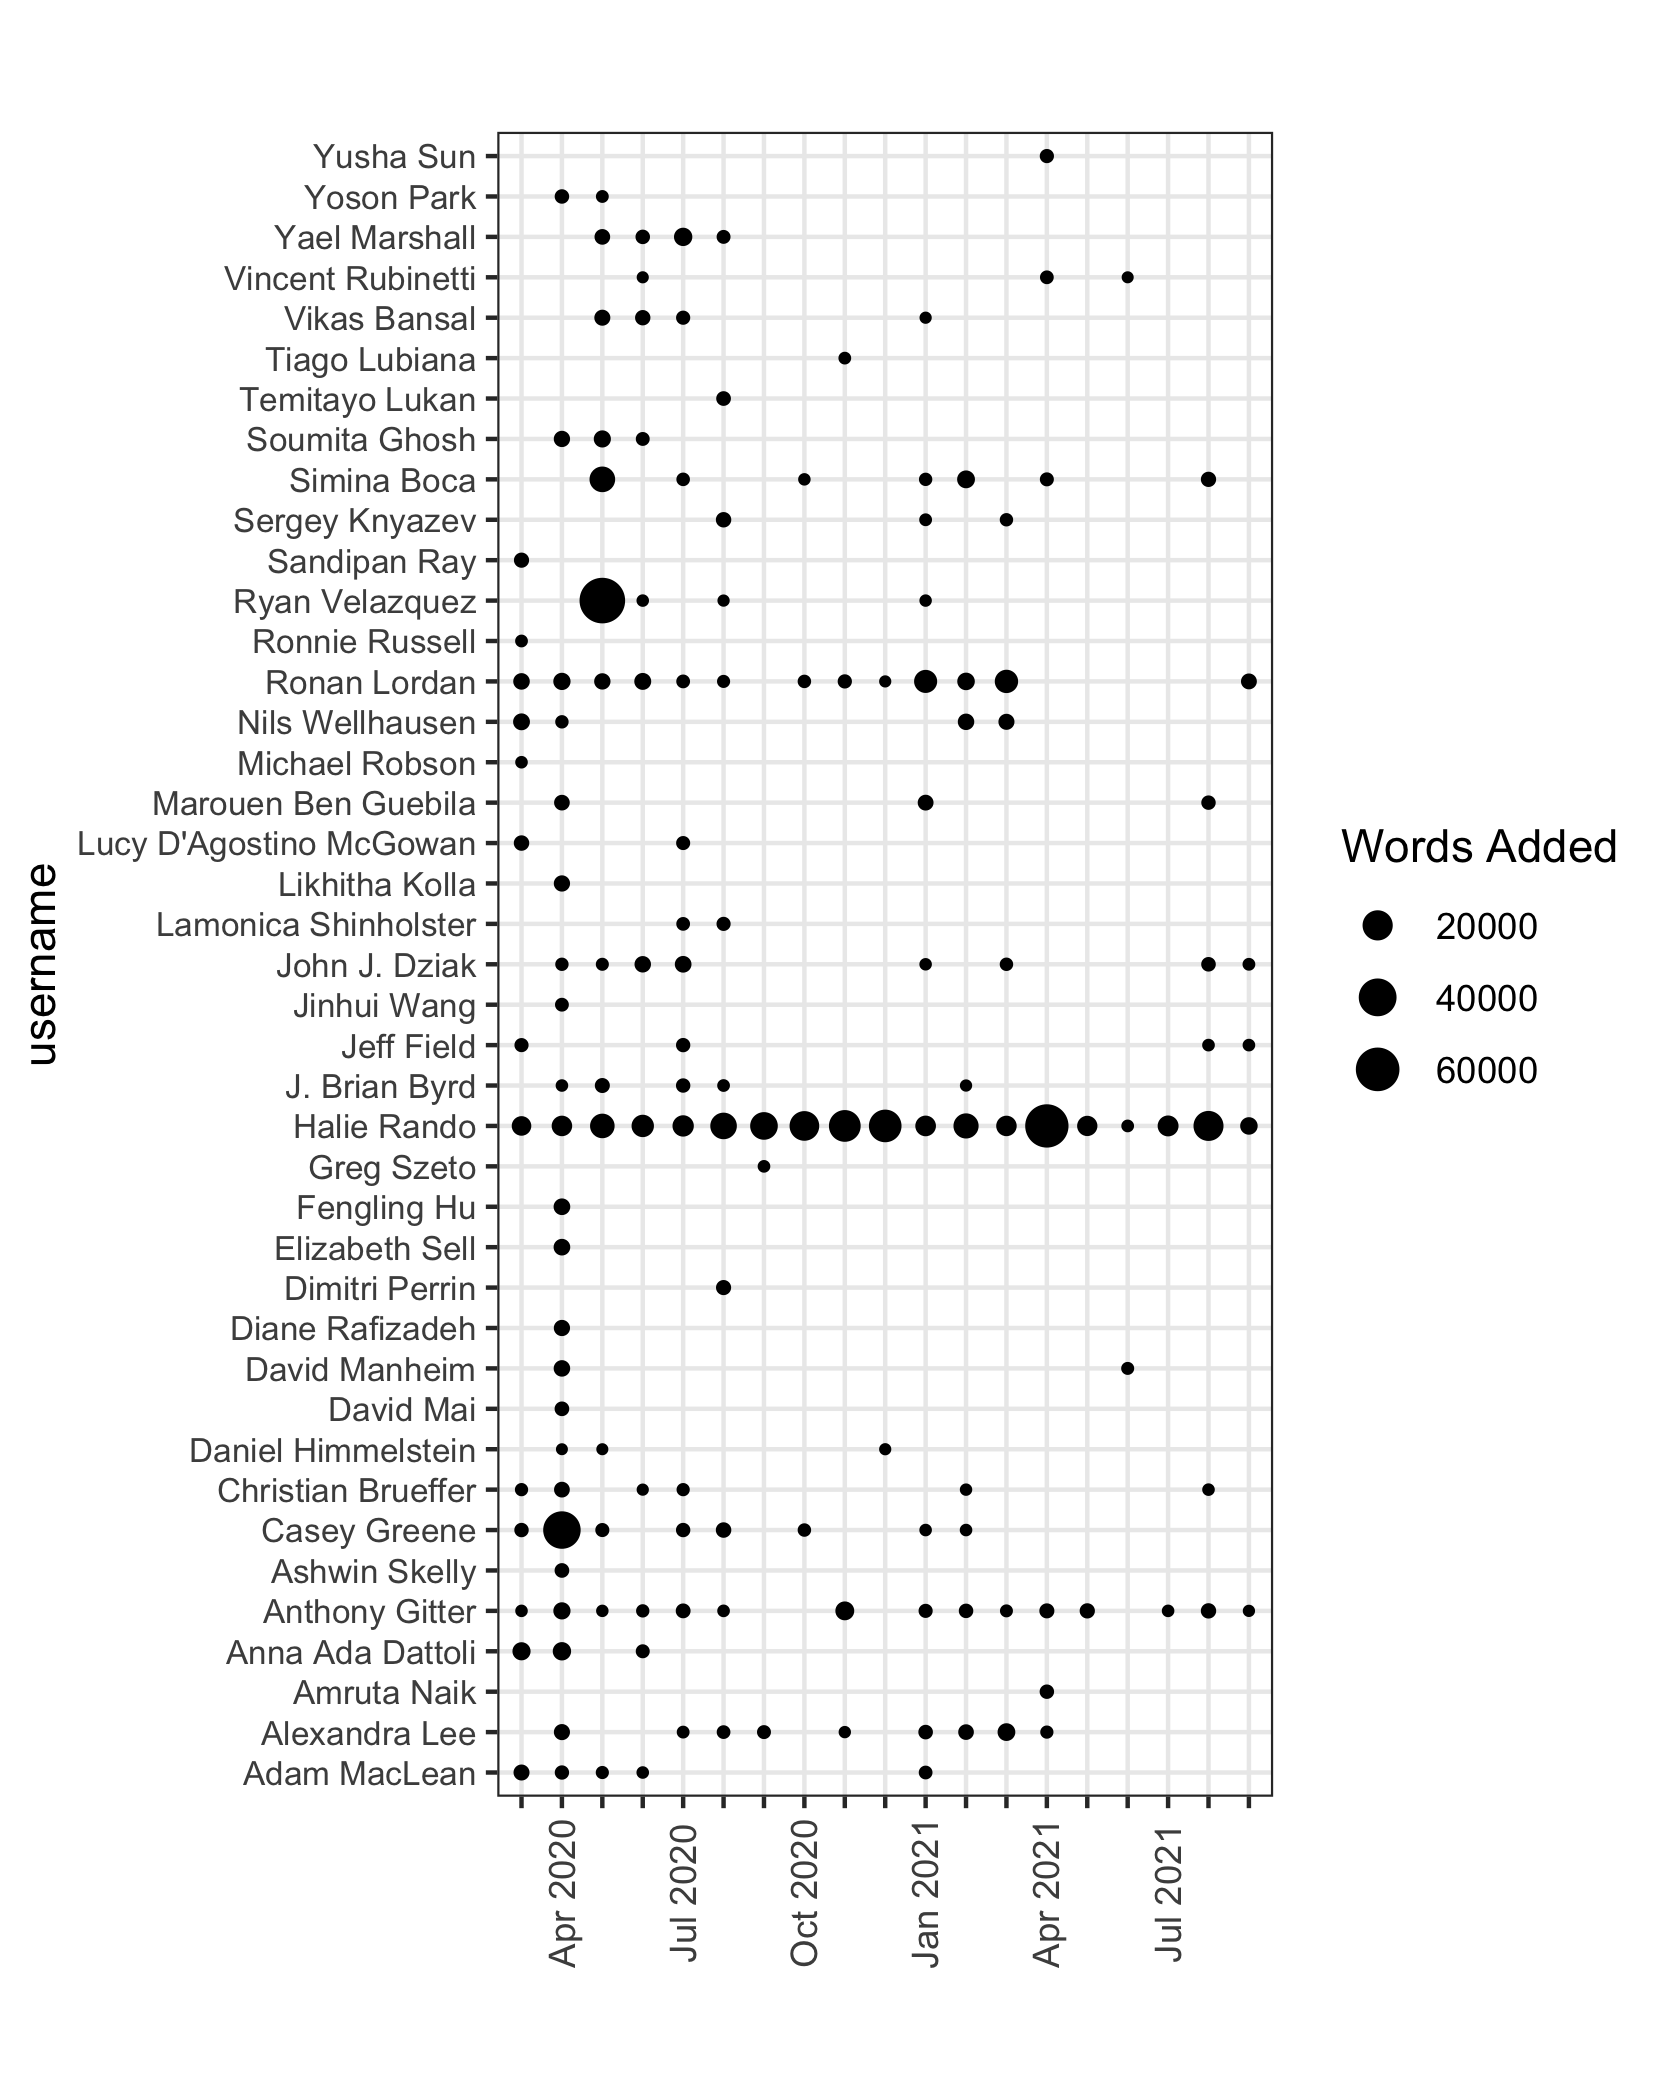 Figure11: User contributions to the manuscript text over time. The dot size indicates the number of words added or edited each month since March 2020. The figure does not depict other types of author contributions such as literature summaries, pull request review, visualization, or software.